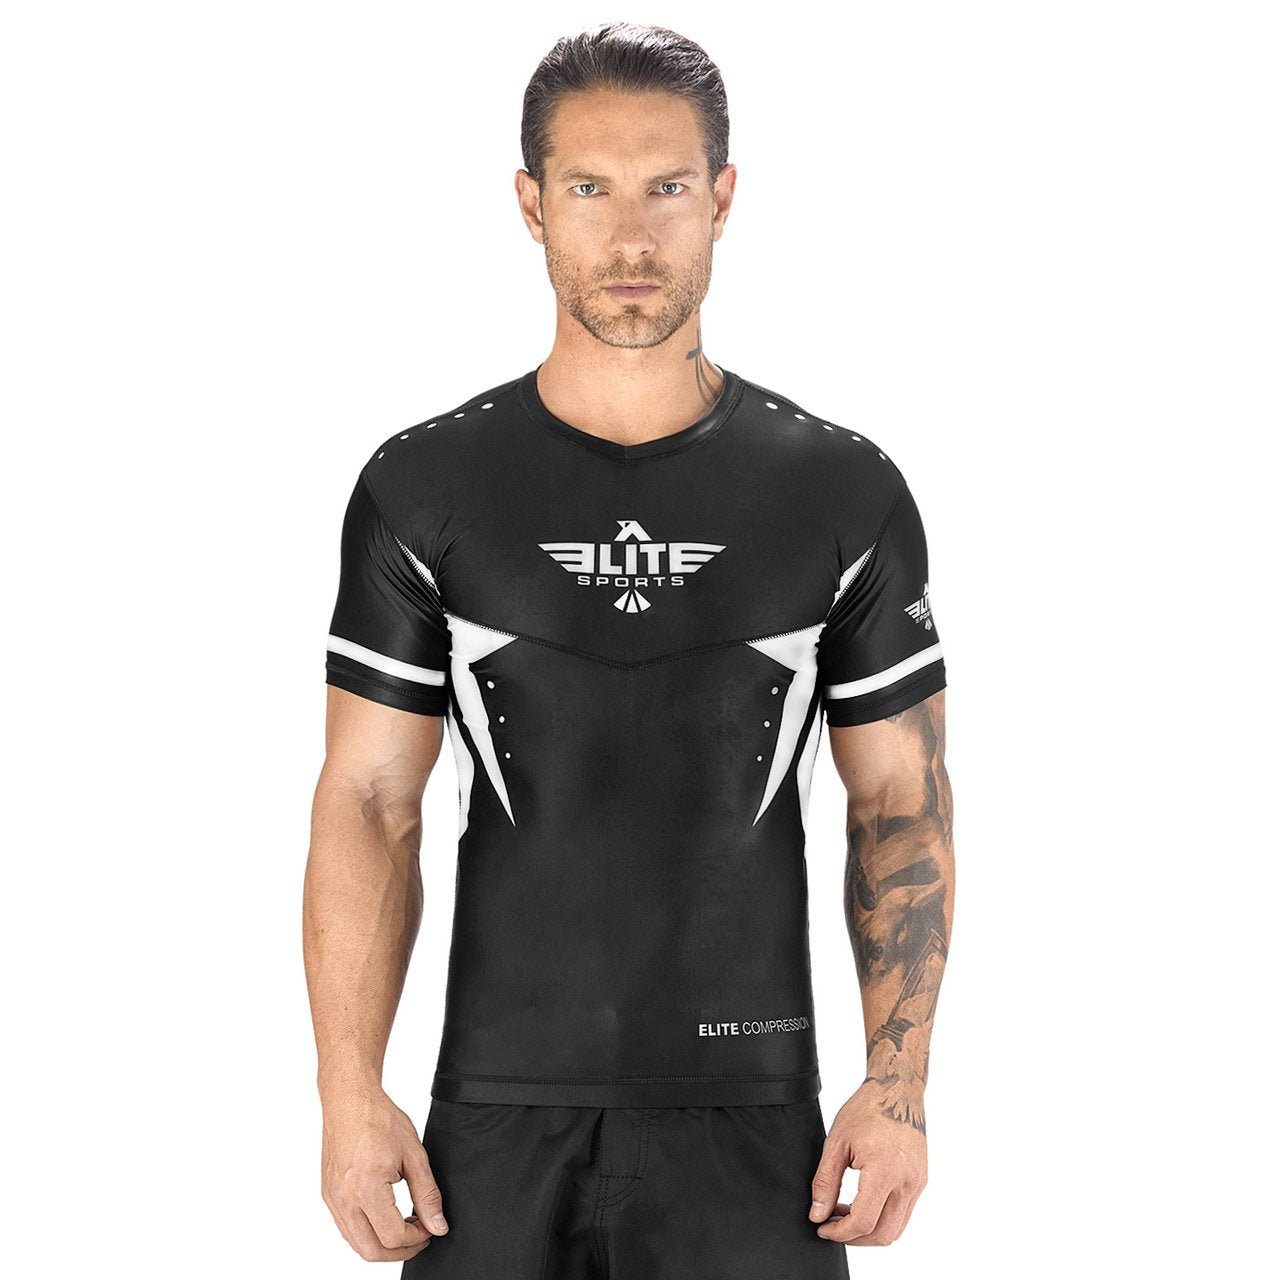 Load image into Gallery viewer, Elite Sports Star Series Sublimation Black/White Short Sleeve Brazilian Jiu Jitsu BJJ Rash Guard